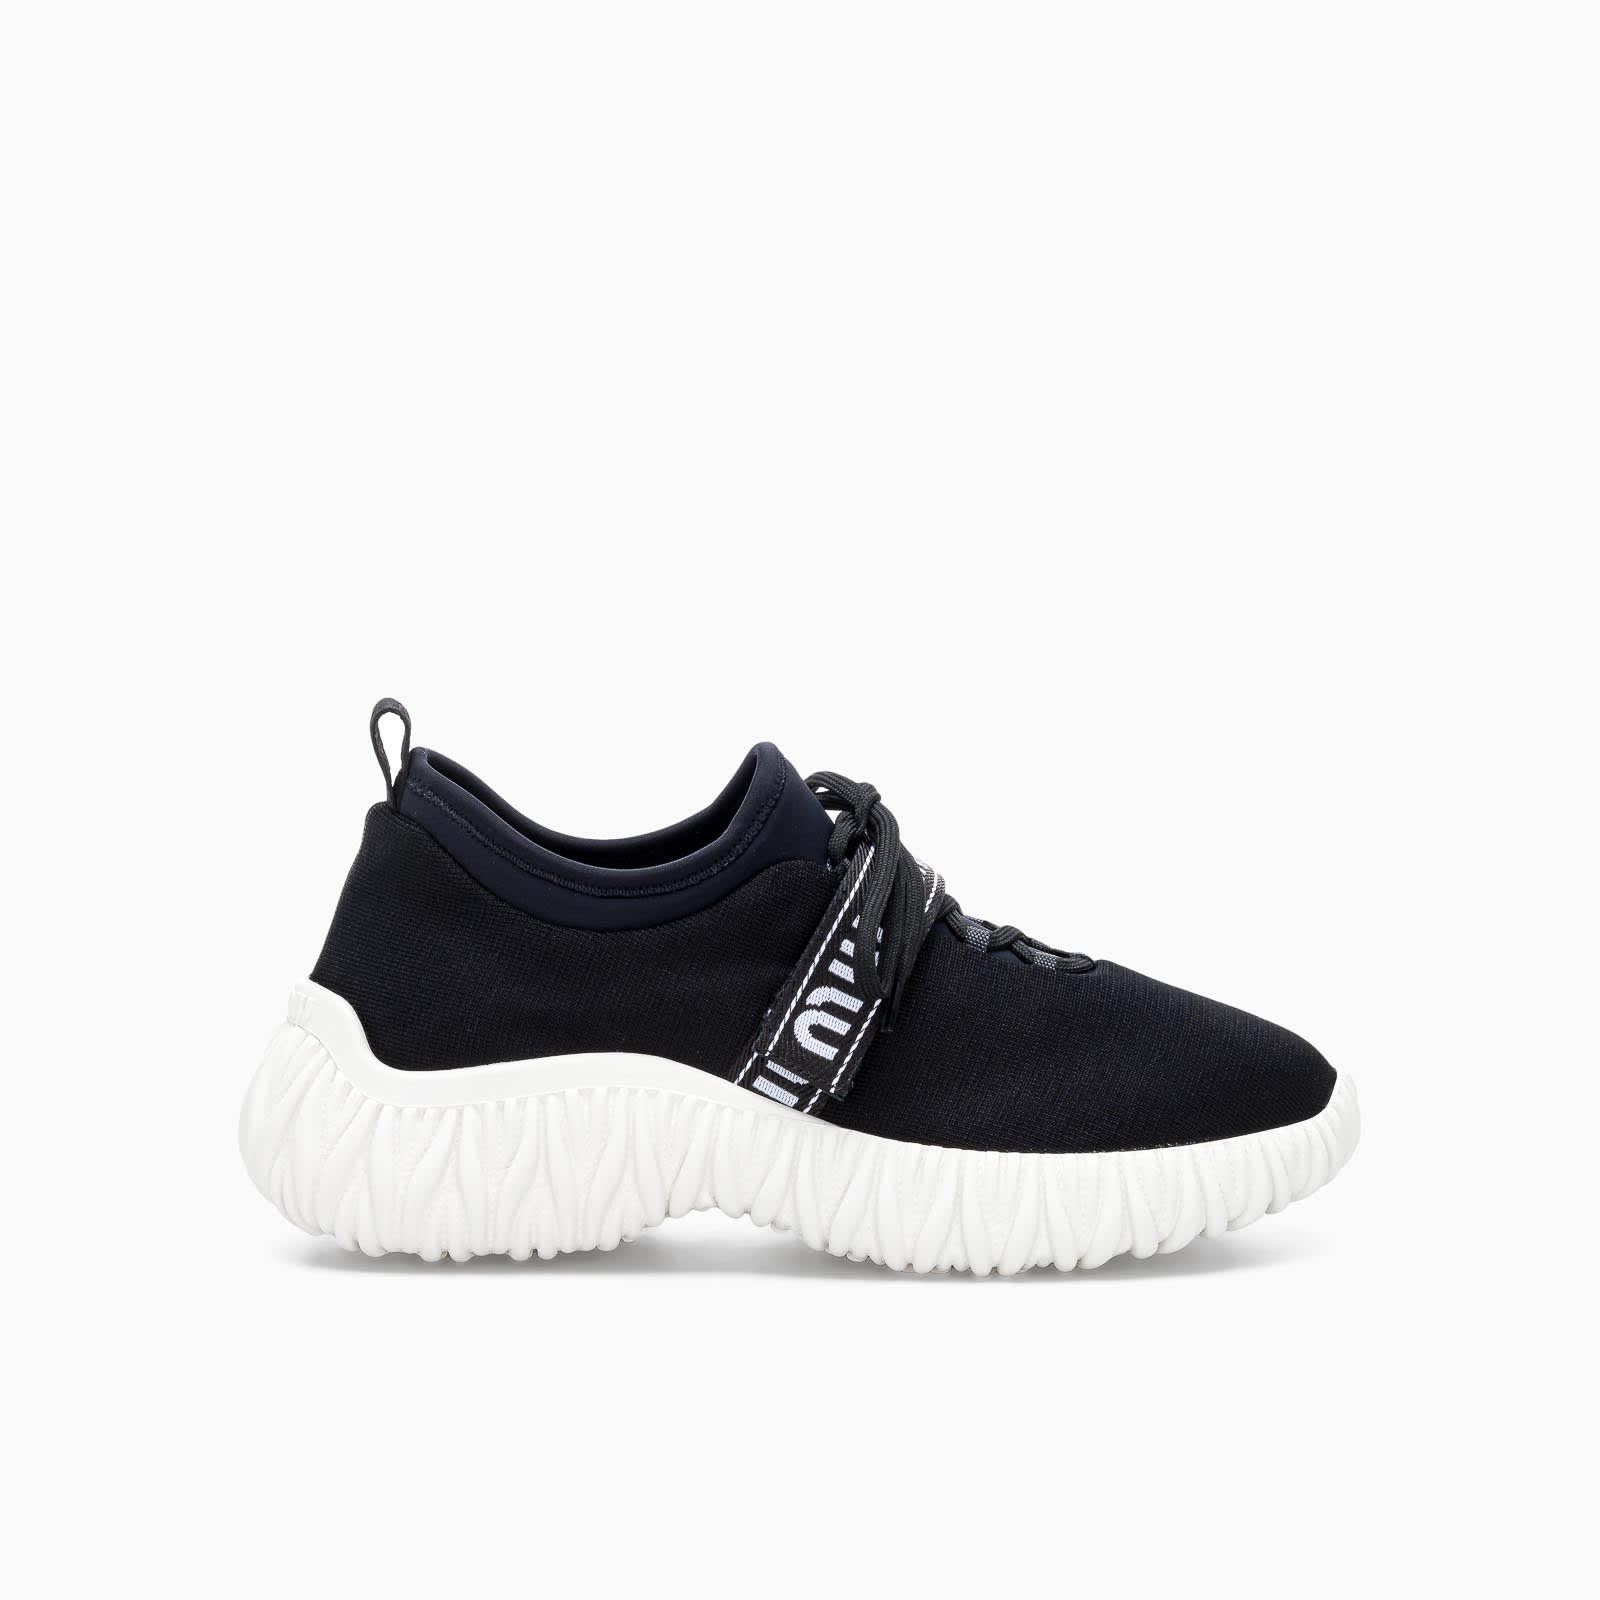 Miu Miu STRETCH KNIT SNEAKERS